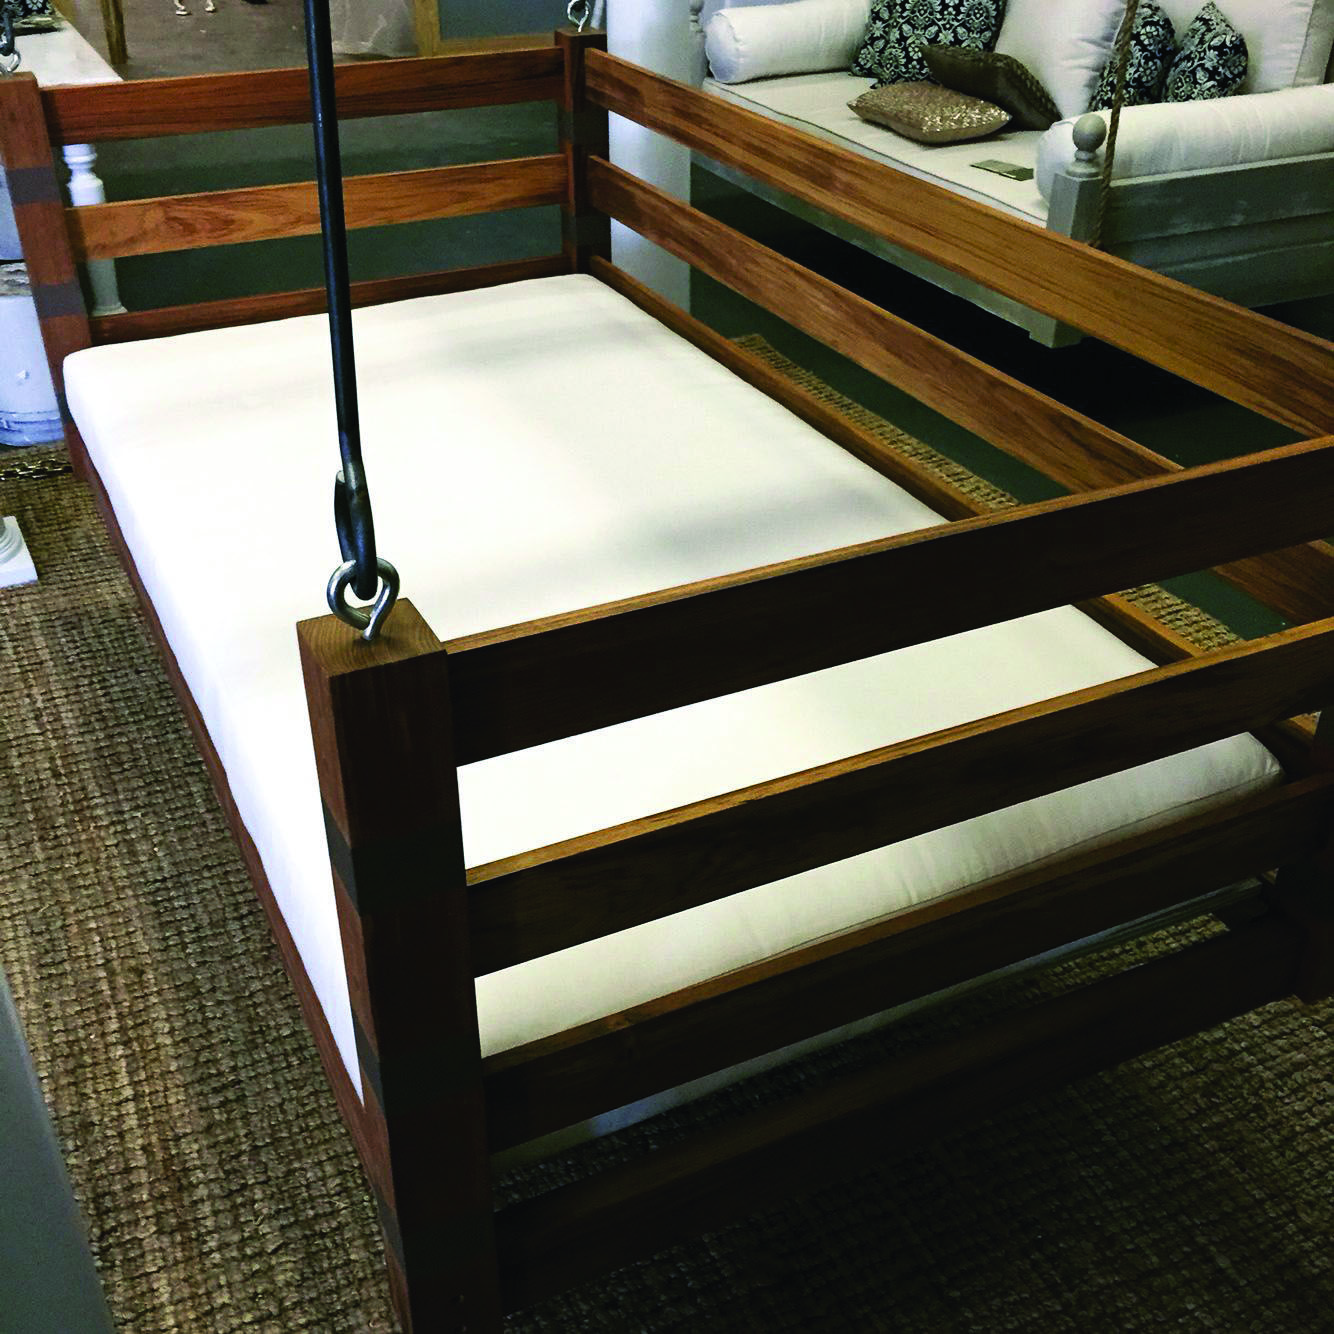 Free Do It Yourself Patio Swing Plans Suggestions To Chill In Your Face Balcony Homes Tre Diy Porch Swing Patio Swing Diy Porch Swing Bed